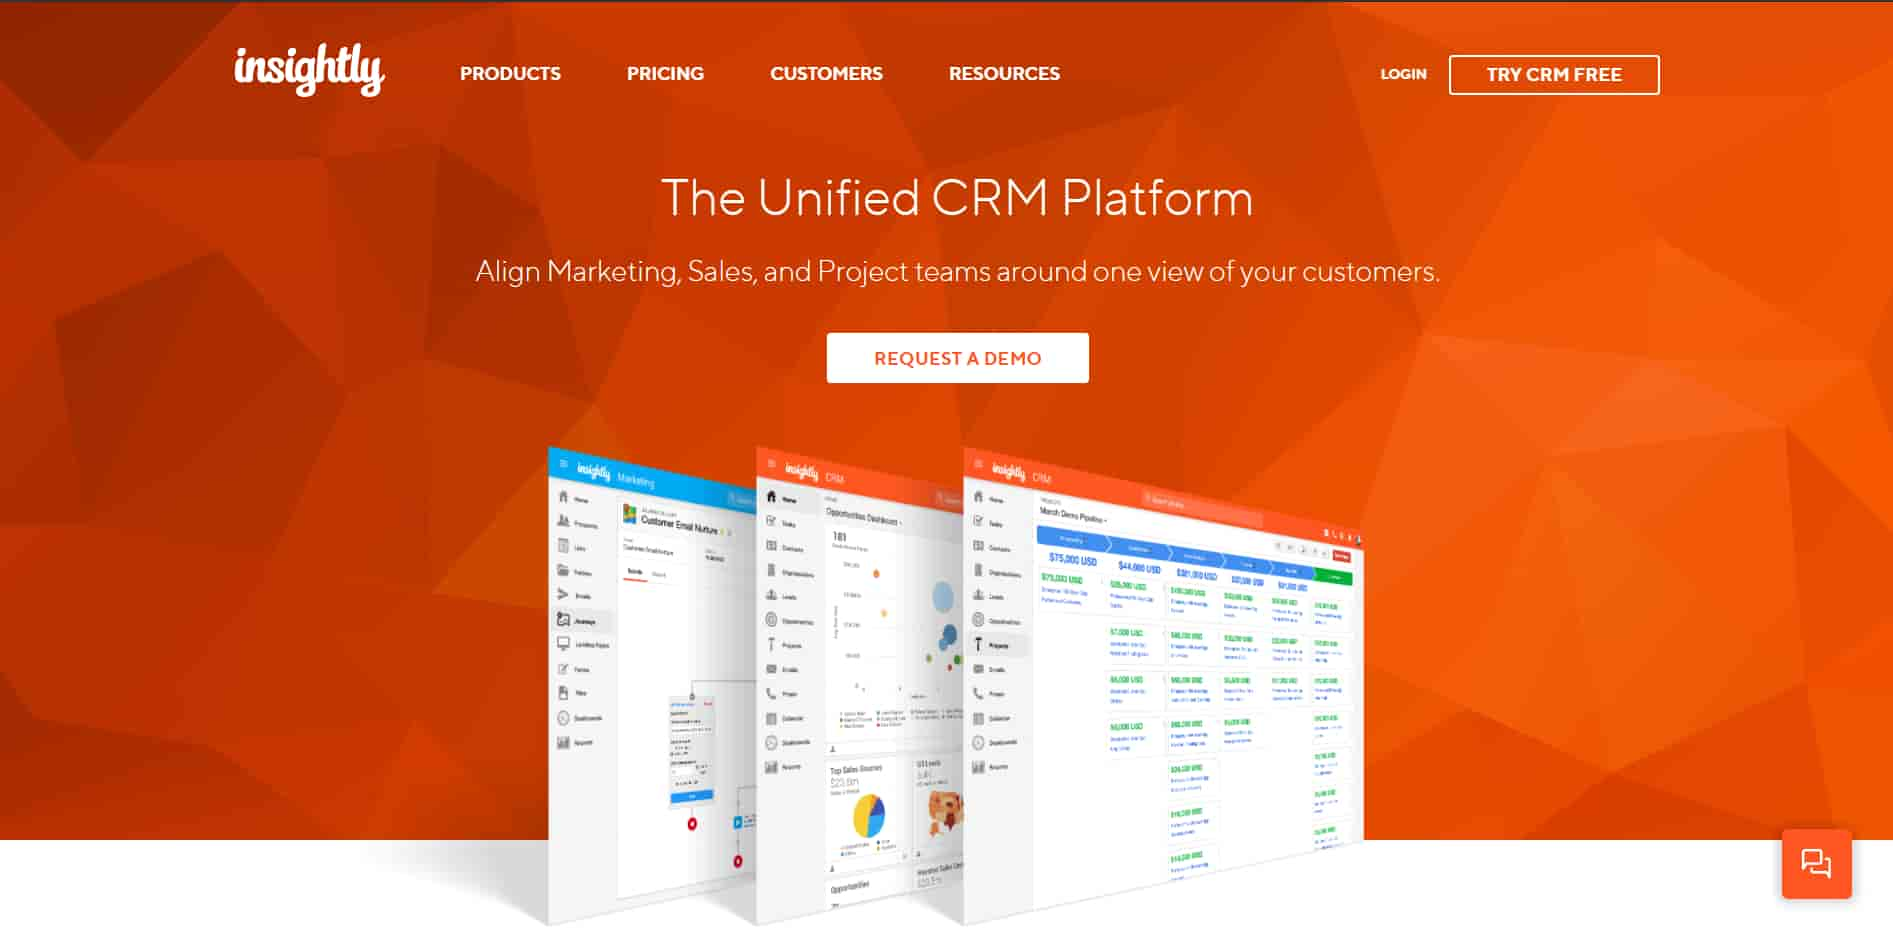 insightly is the best unified CRM platform for small business